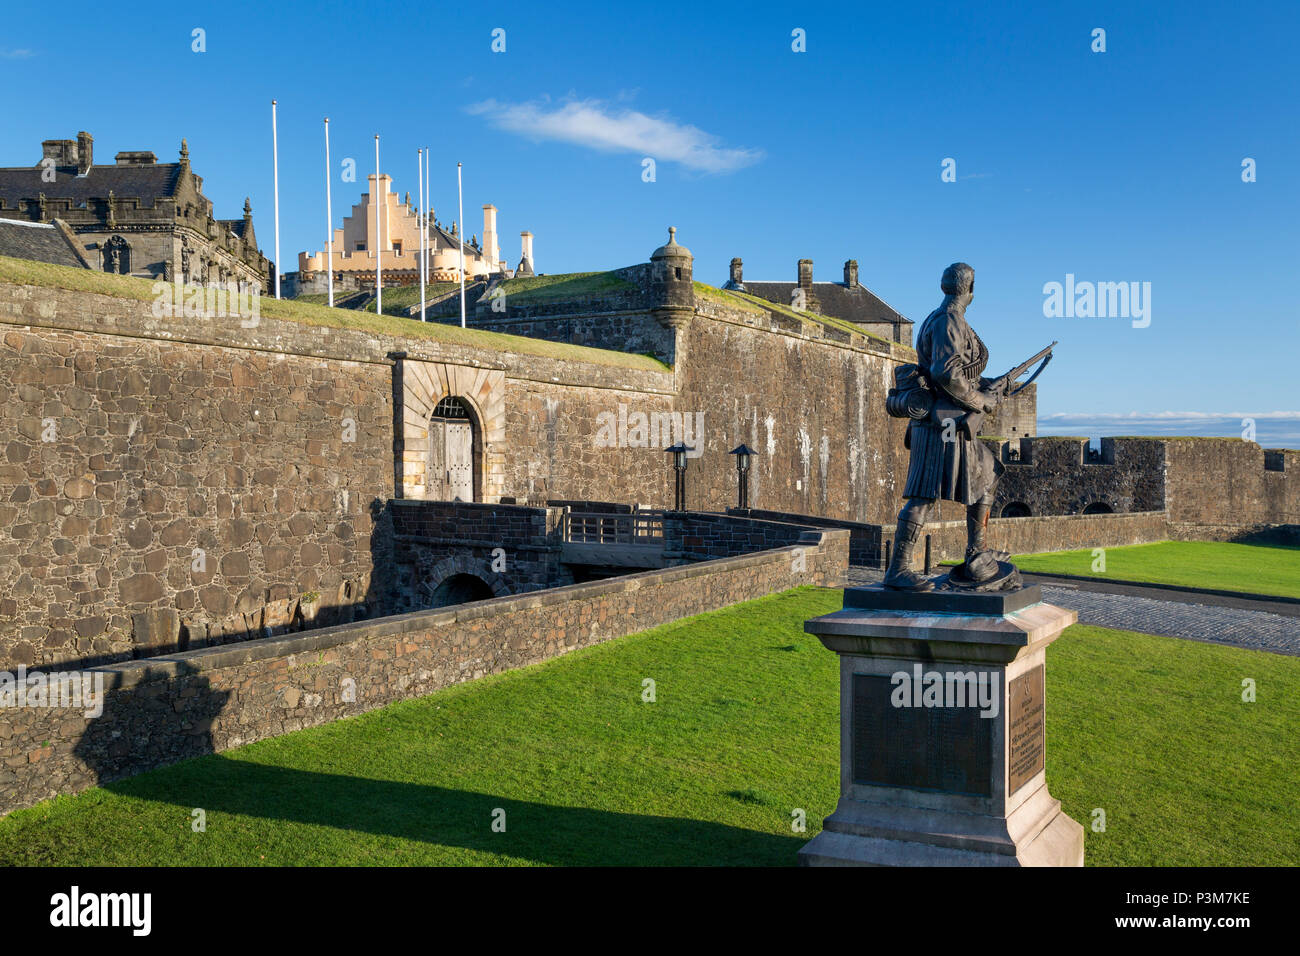 Memorial at Stirling Castle to Highland soldiers lost during South African (Boer) War (1899-1902), Stirling, Scotland, UK - Stock Image